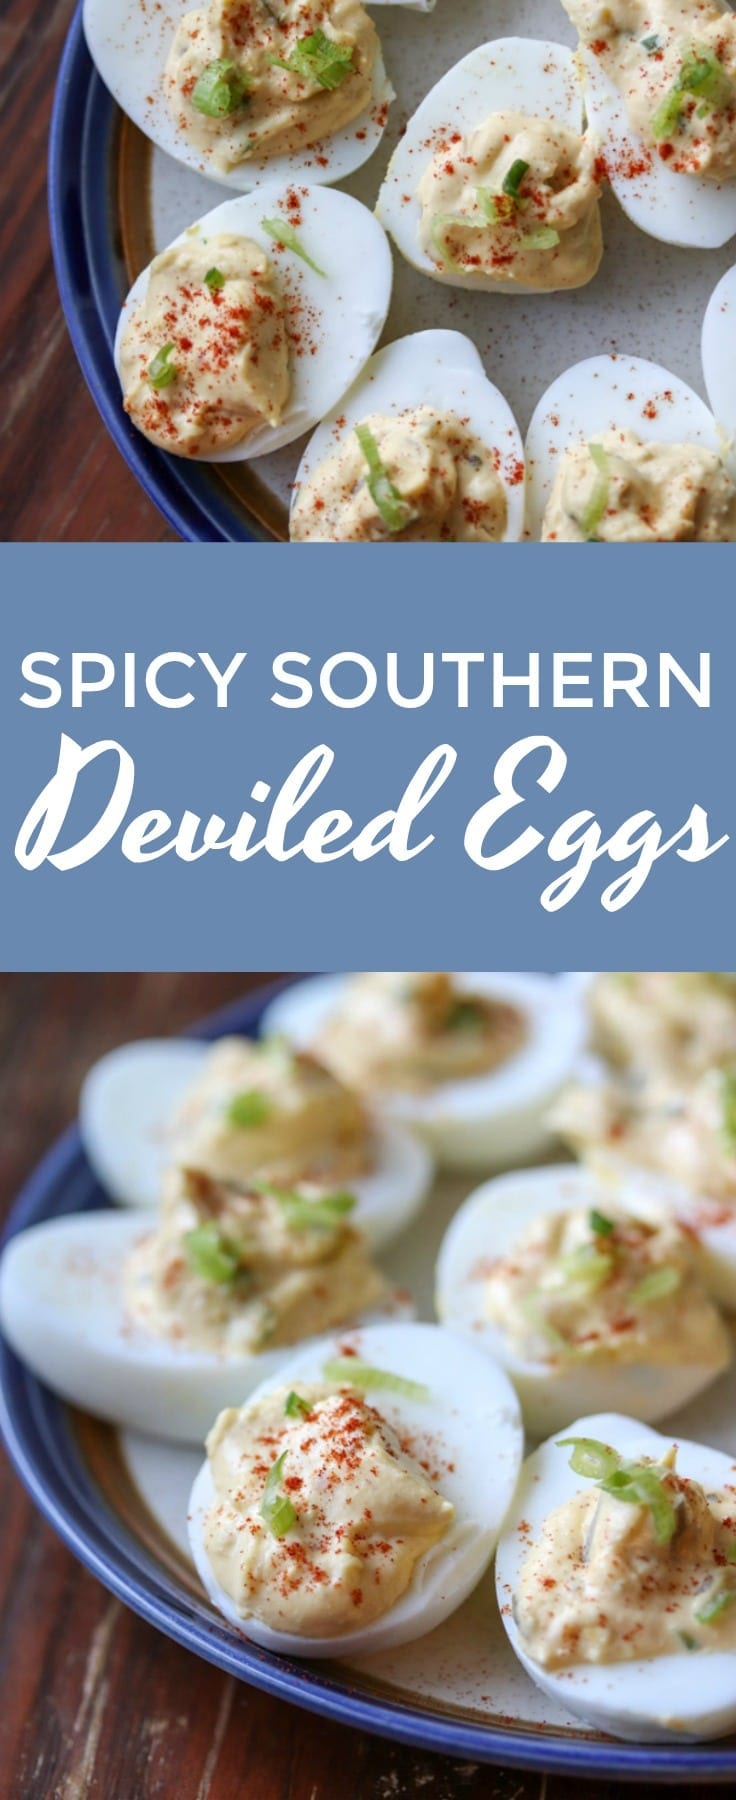 These delicious southern deviled eggs are spiced up with hot sauce and chopped jalapenos. A sure treat for anyone who loves deviled eggs!